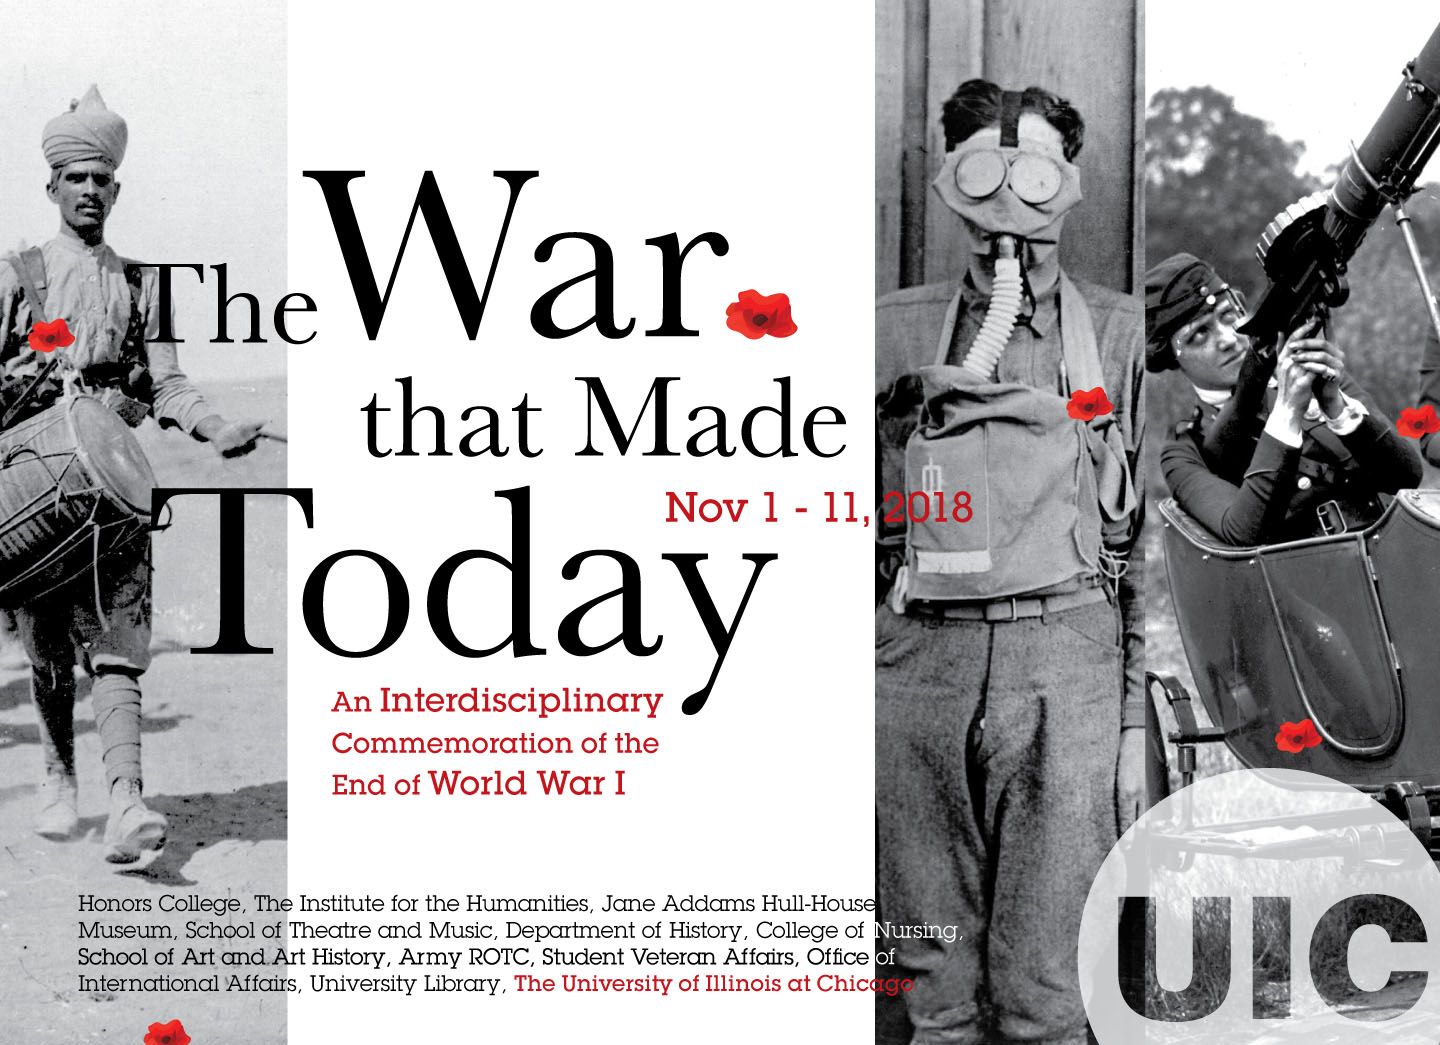 Banner: The War that Made Today. An interdisciplinary Commemoration of the End of World War 1. Nov 1 - 11, 2018